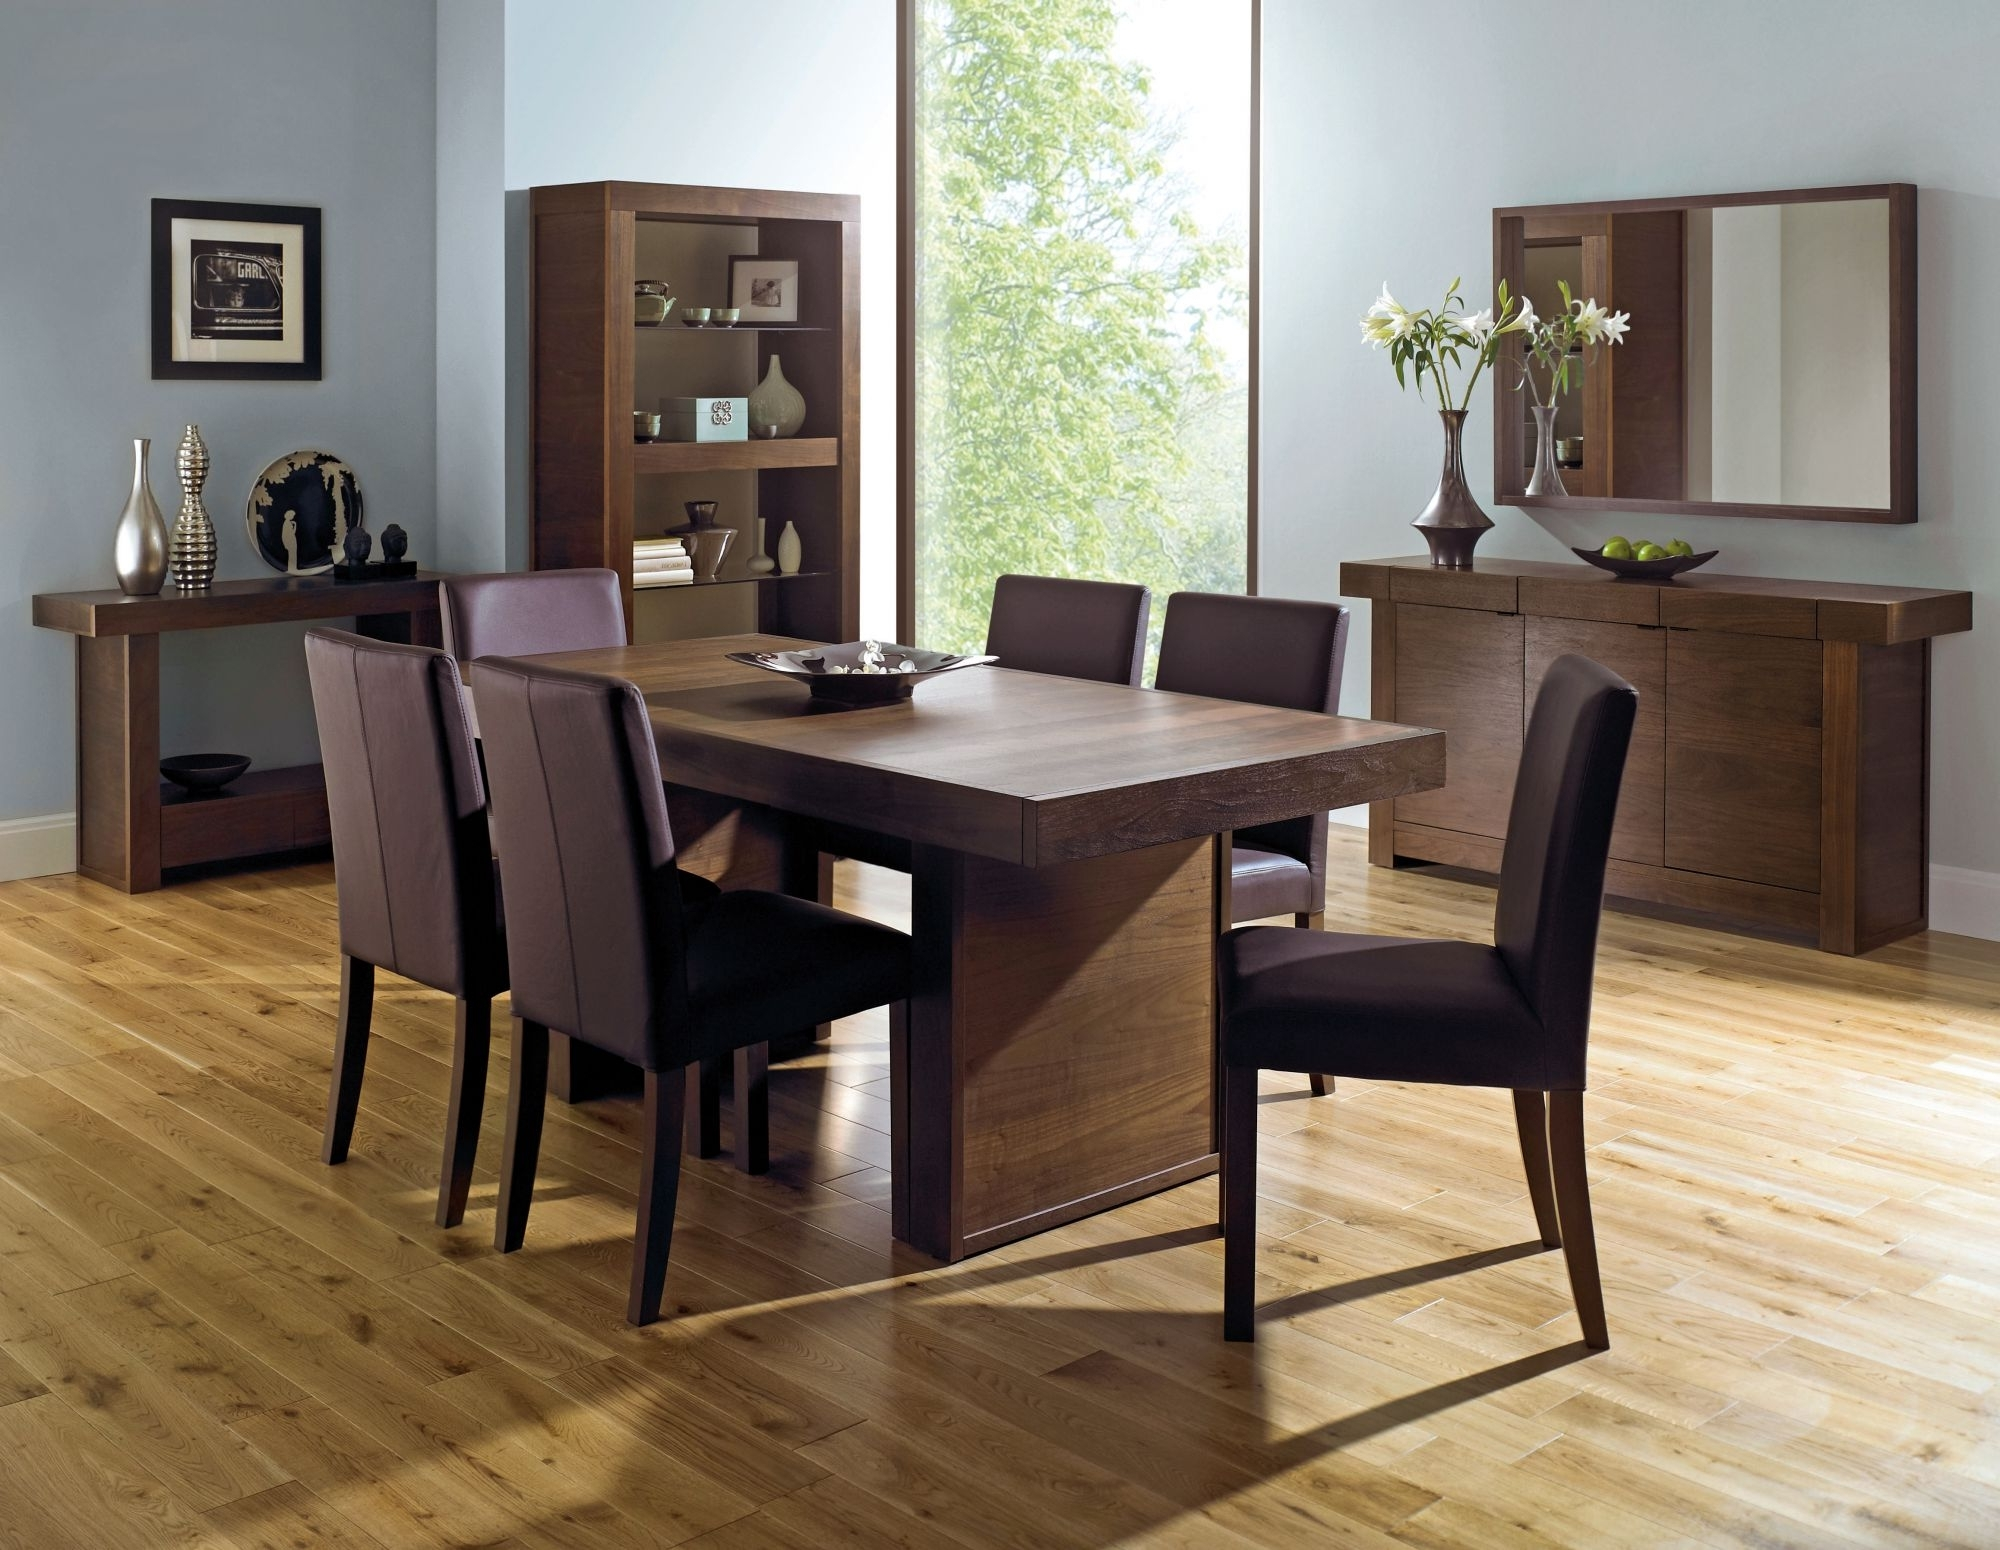 Trendy Walnut Dining Table And 6 Chairs Intended For Bentley Designs Akita Walnut Panel Dining Table + 6 Square Back (View 16 of 25)